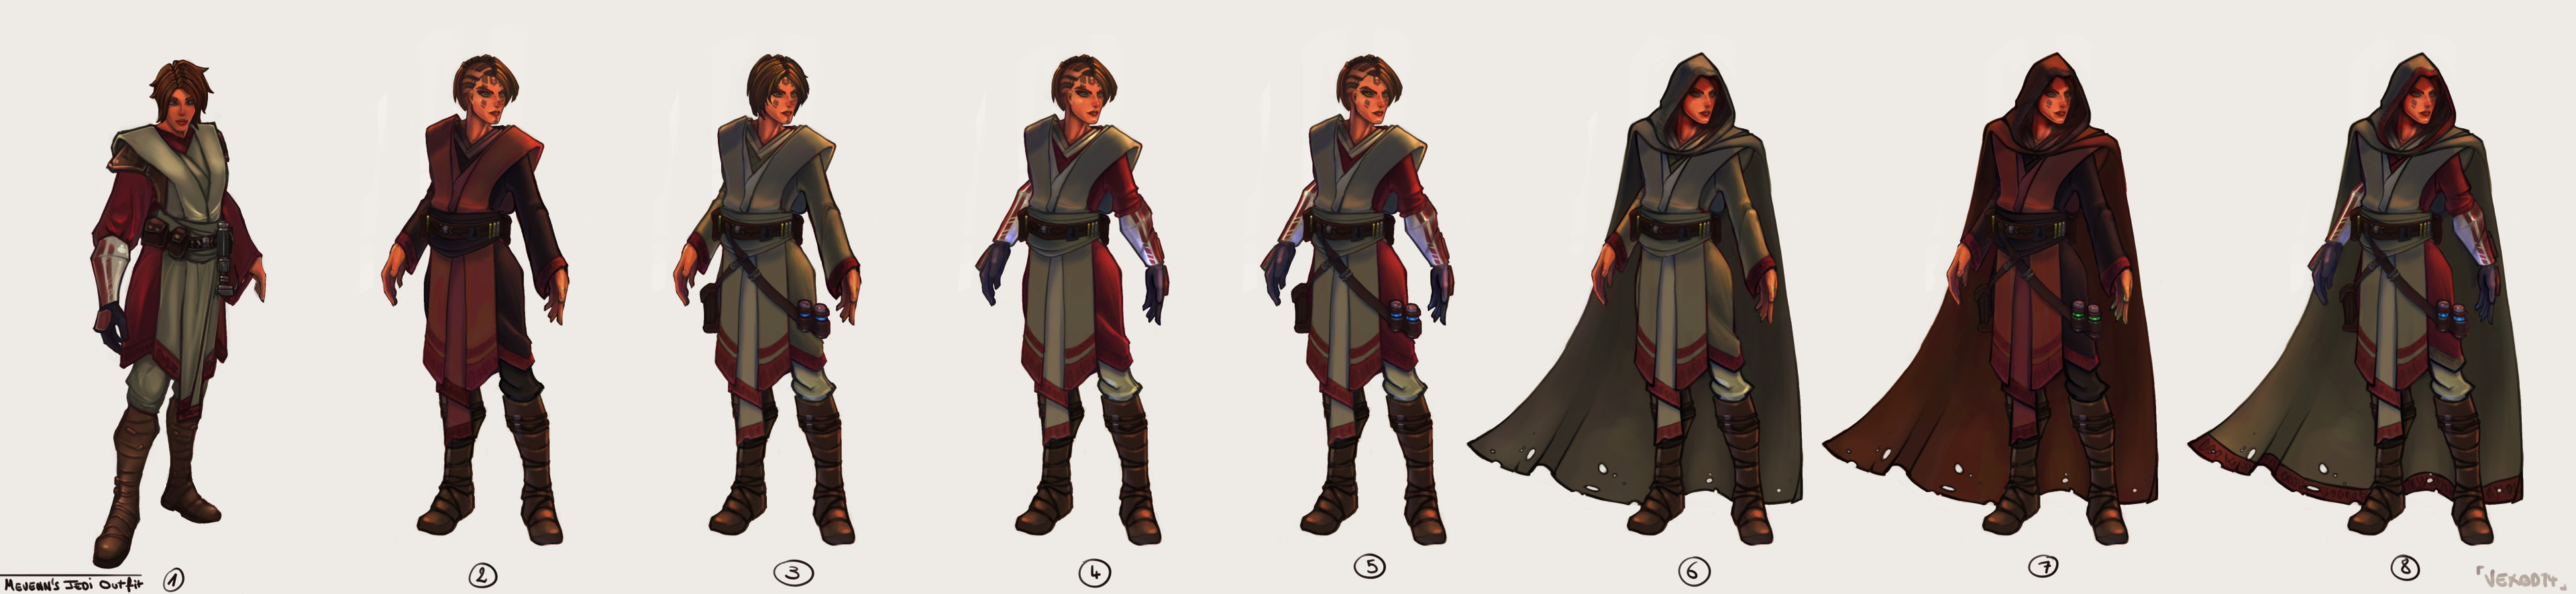 New and next hero outfit variations :)